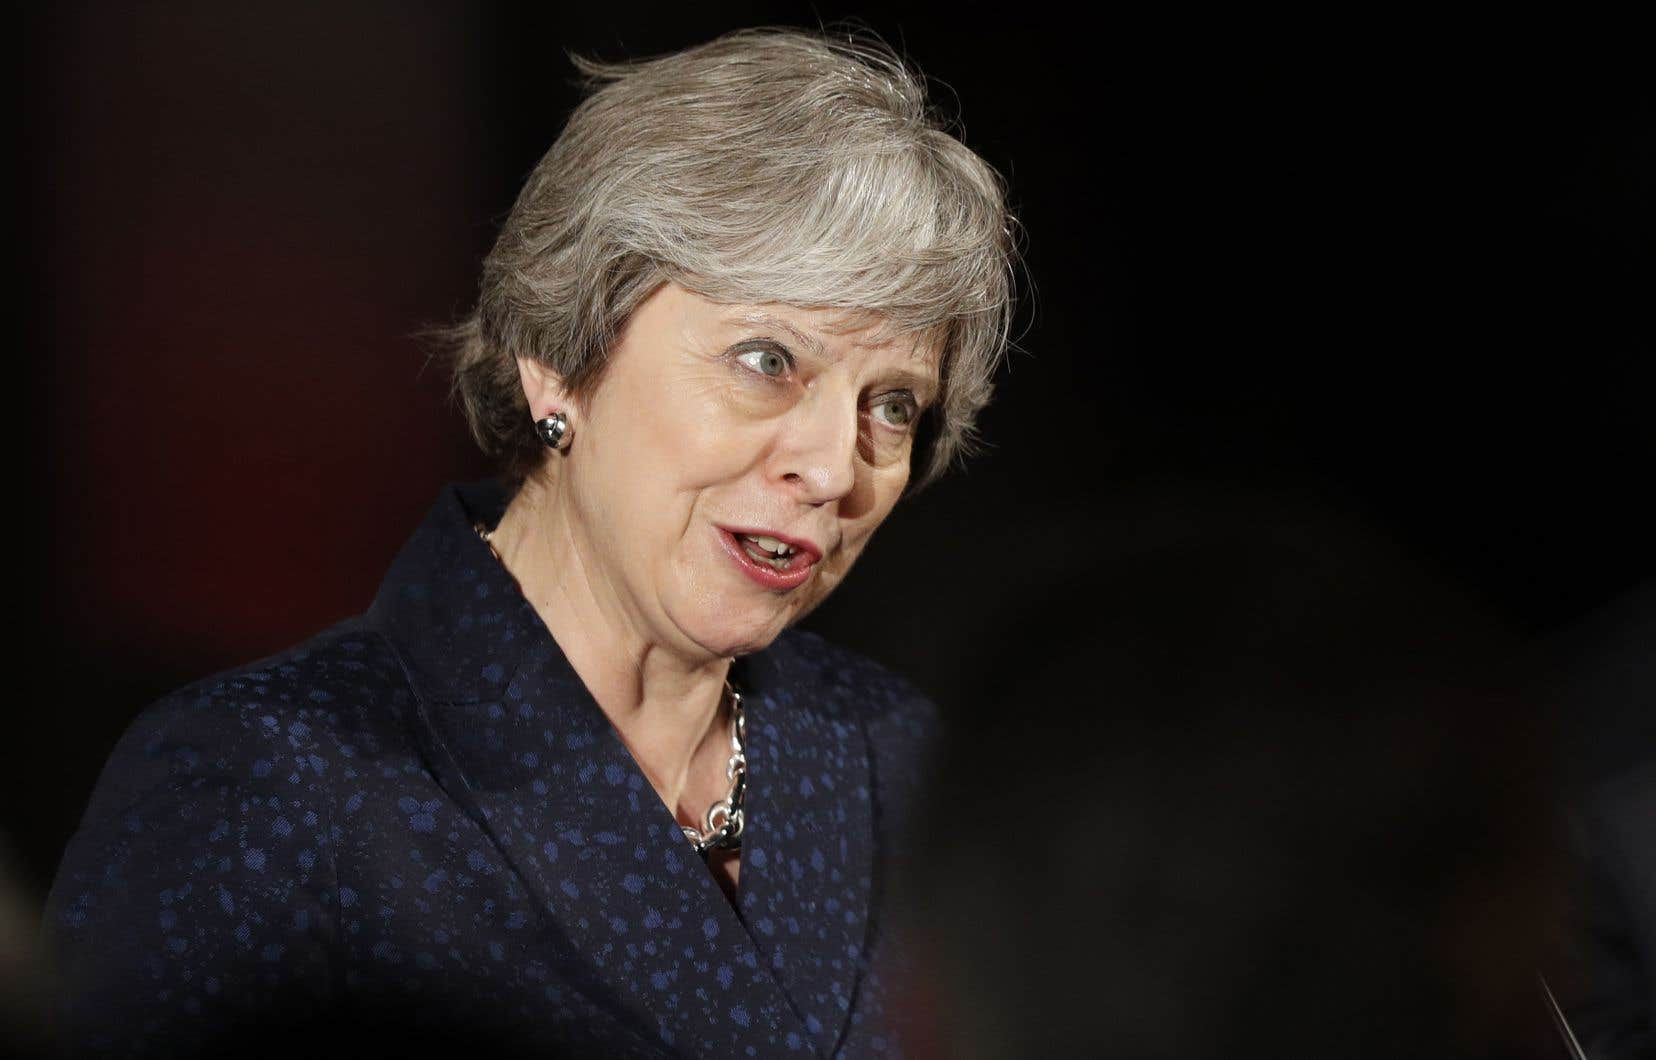 «La Russie cherche à faire de l'information une arme [...] dans le but de semer la discorde en Occident», estimait déjà Theresa May en 2017.